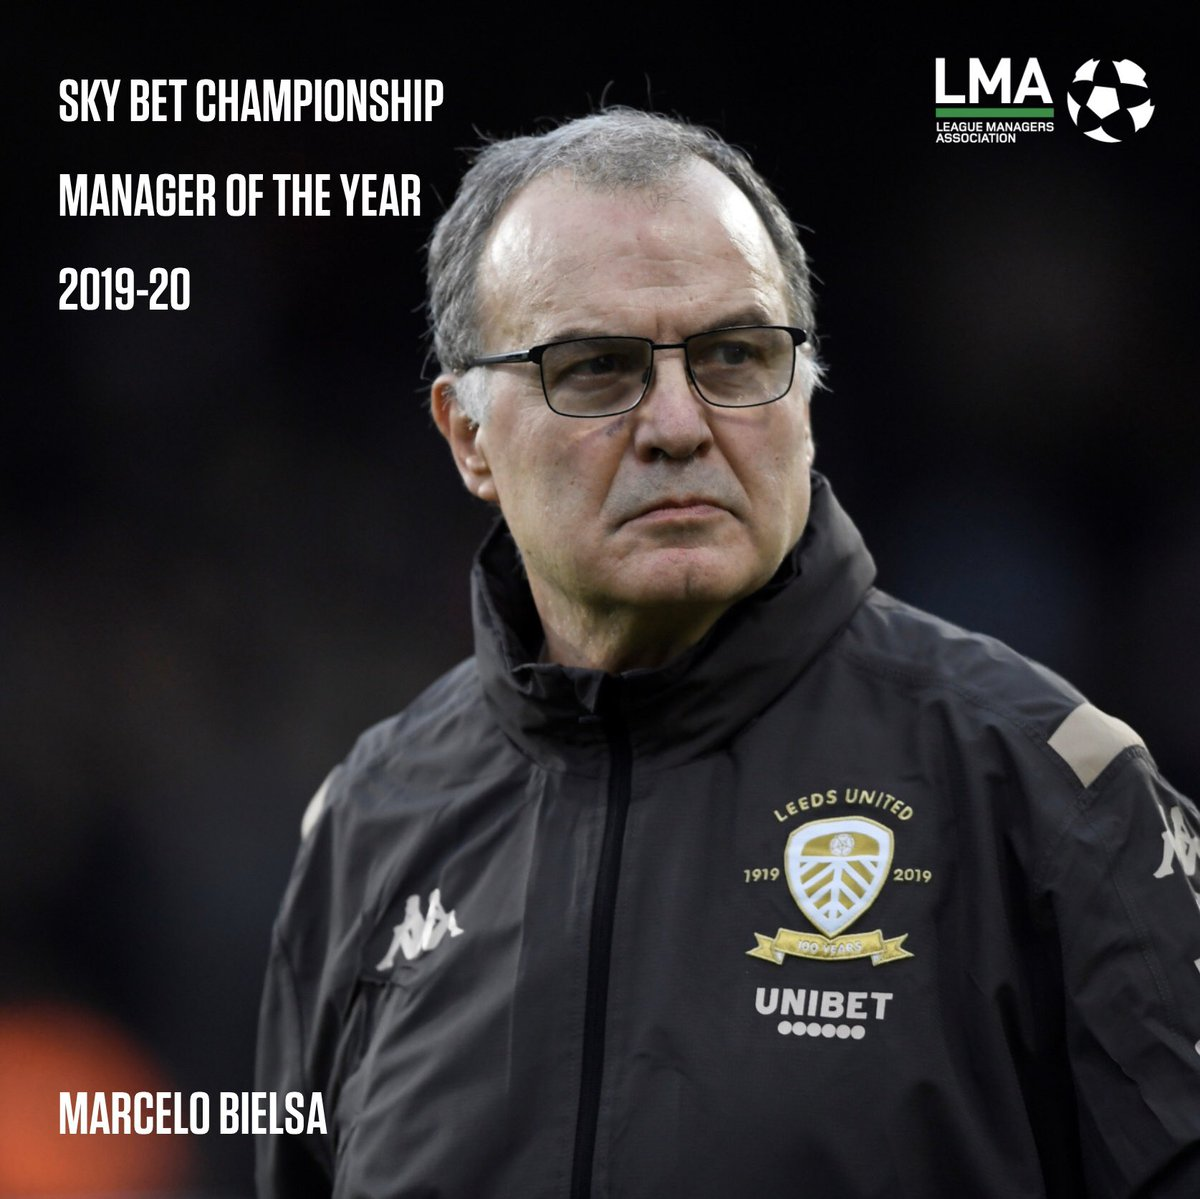 bet on manager of the year